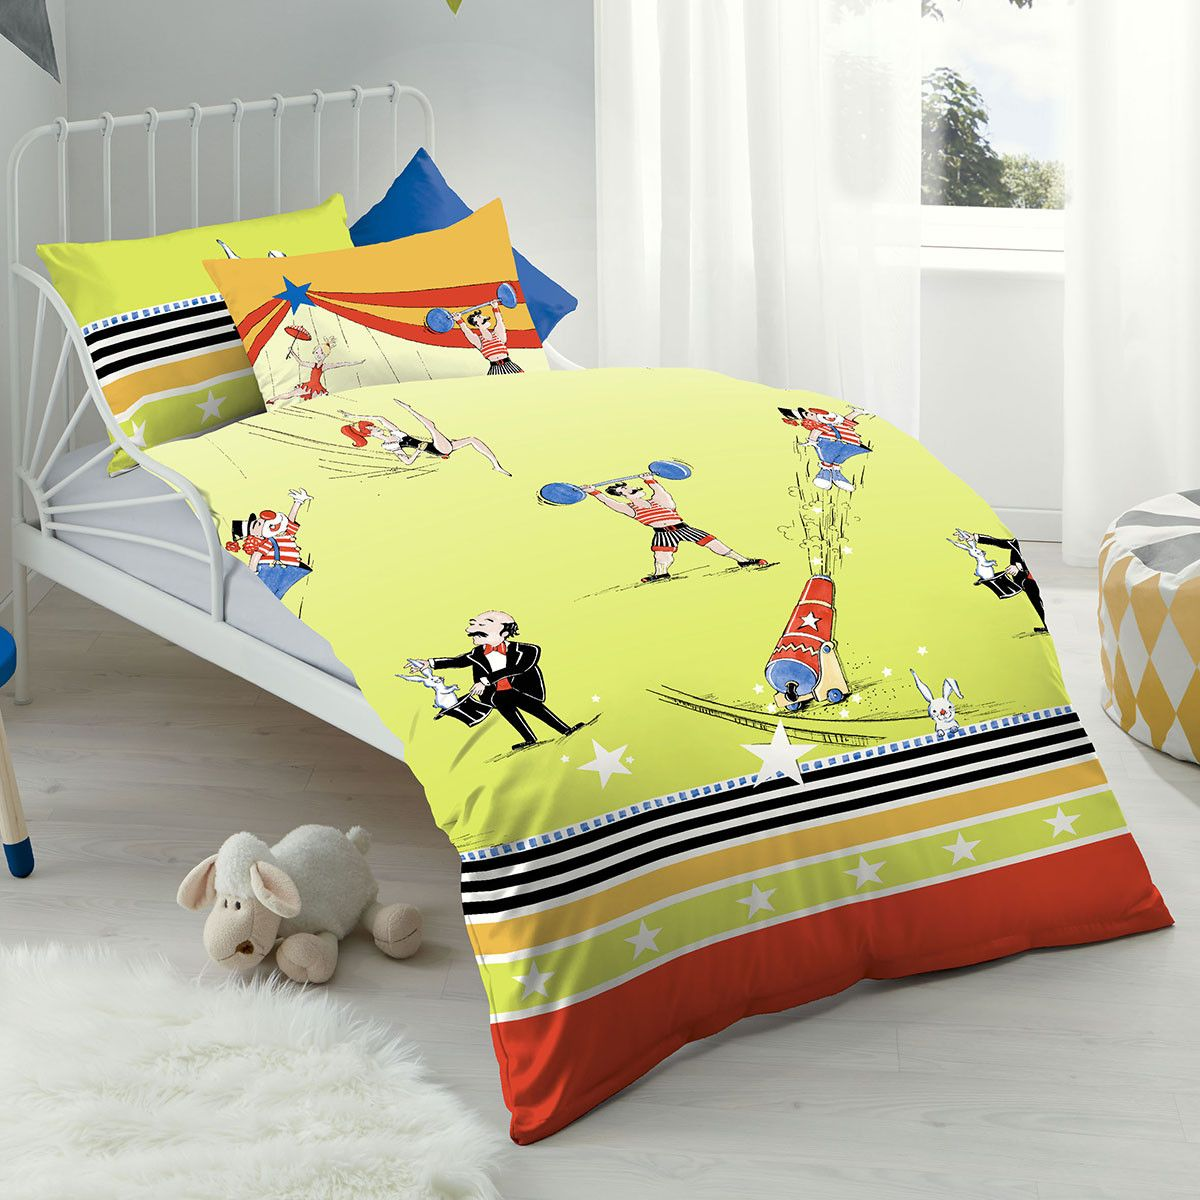 Biber Bettwäsche Kinderbett Kaeppel Biber Kinderbettwäsche Zirkus Kids Bedding Sets